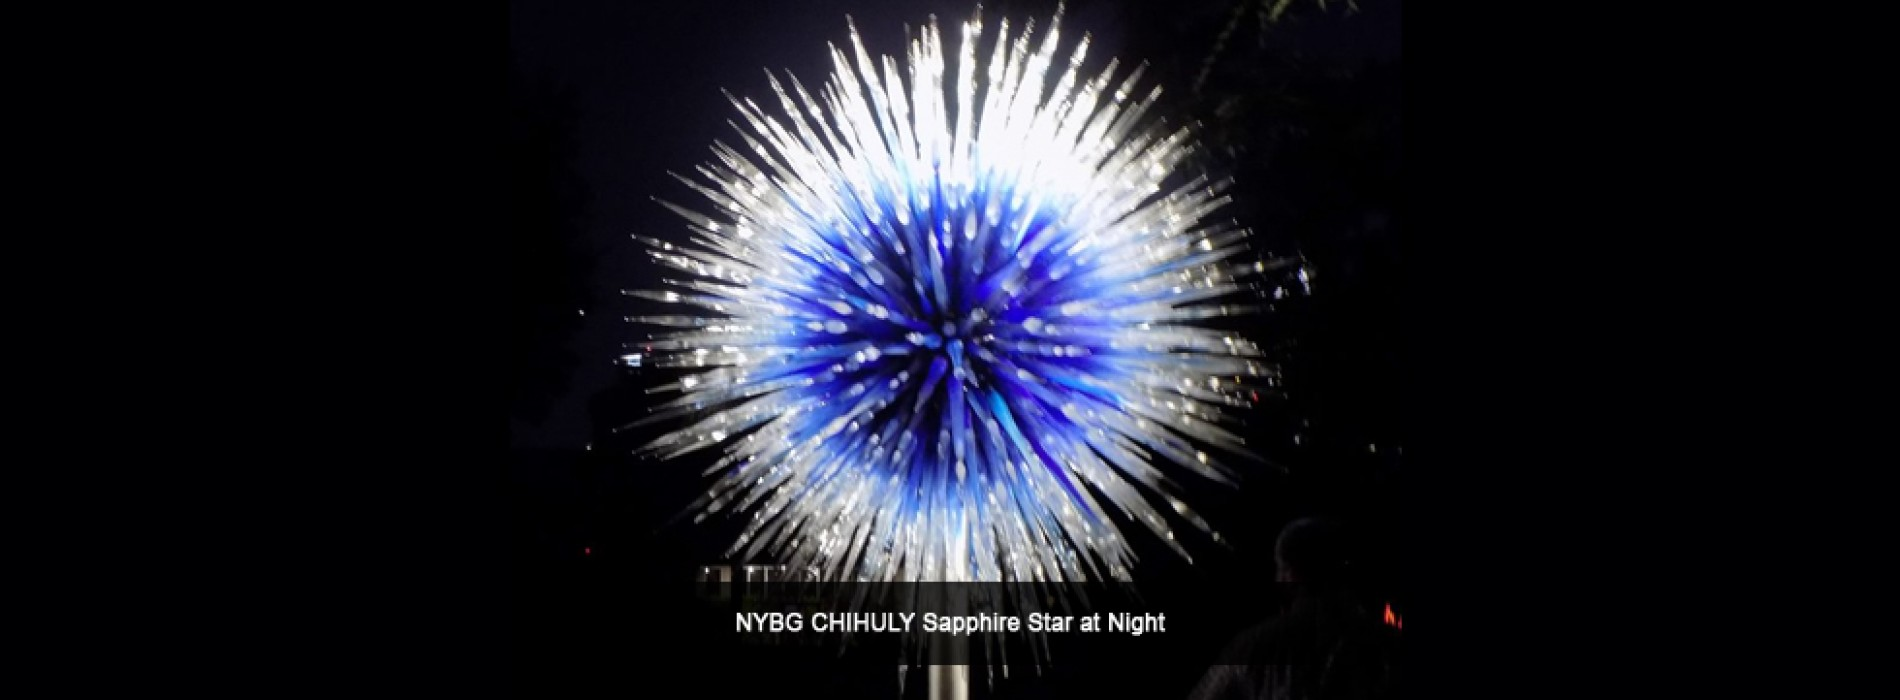 New and exciting CHIHULY experience to debut in New York in Spring 2017